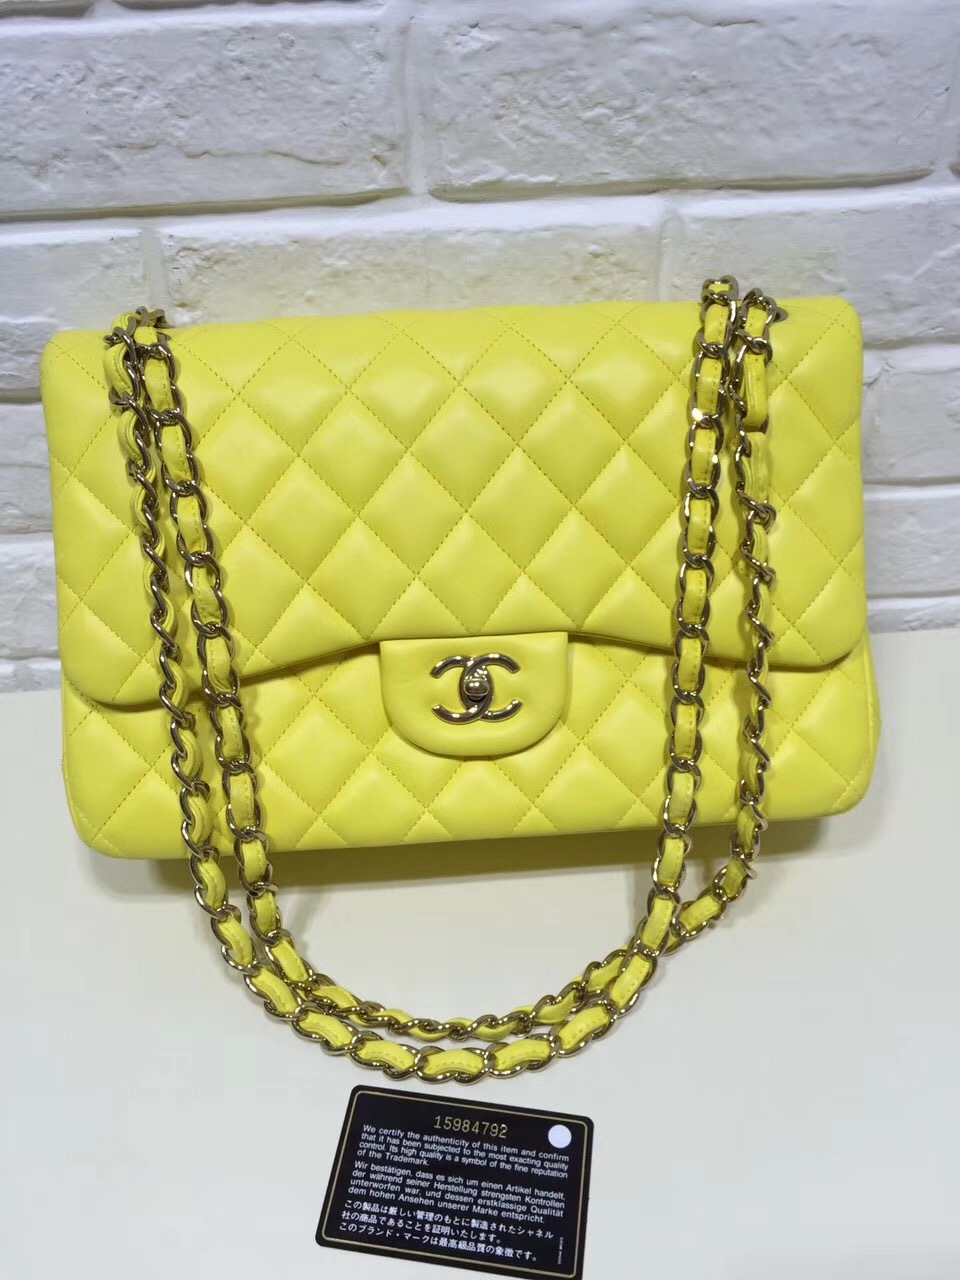 66f5f213bf86 AUTHENTIC CHANEL LIMITED EDITION YELLOW QUILTED LAMBSKIN JUMBO ...